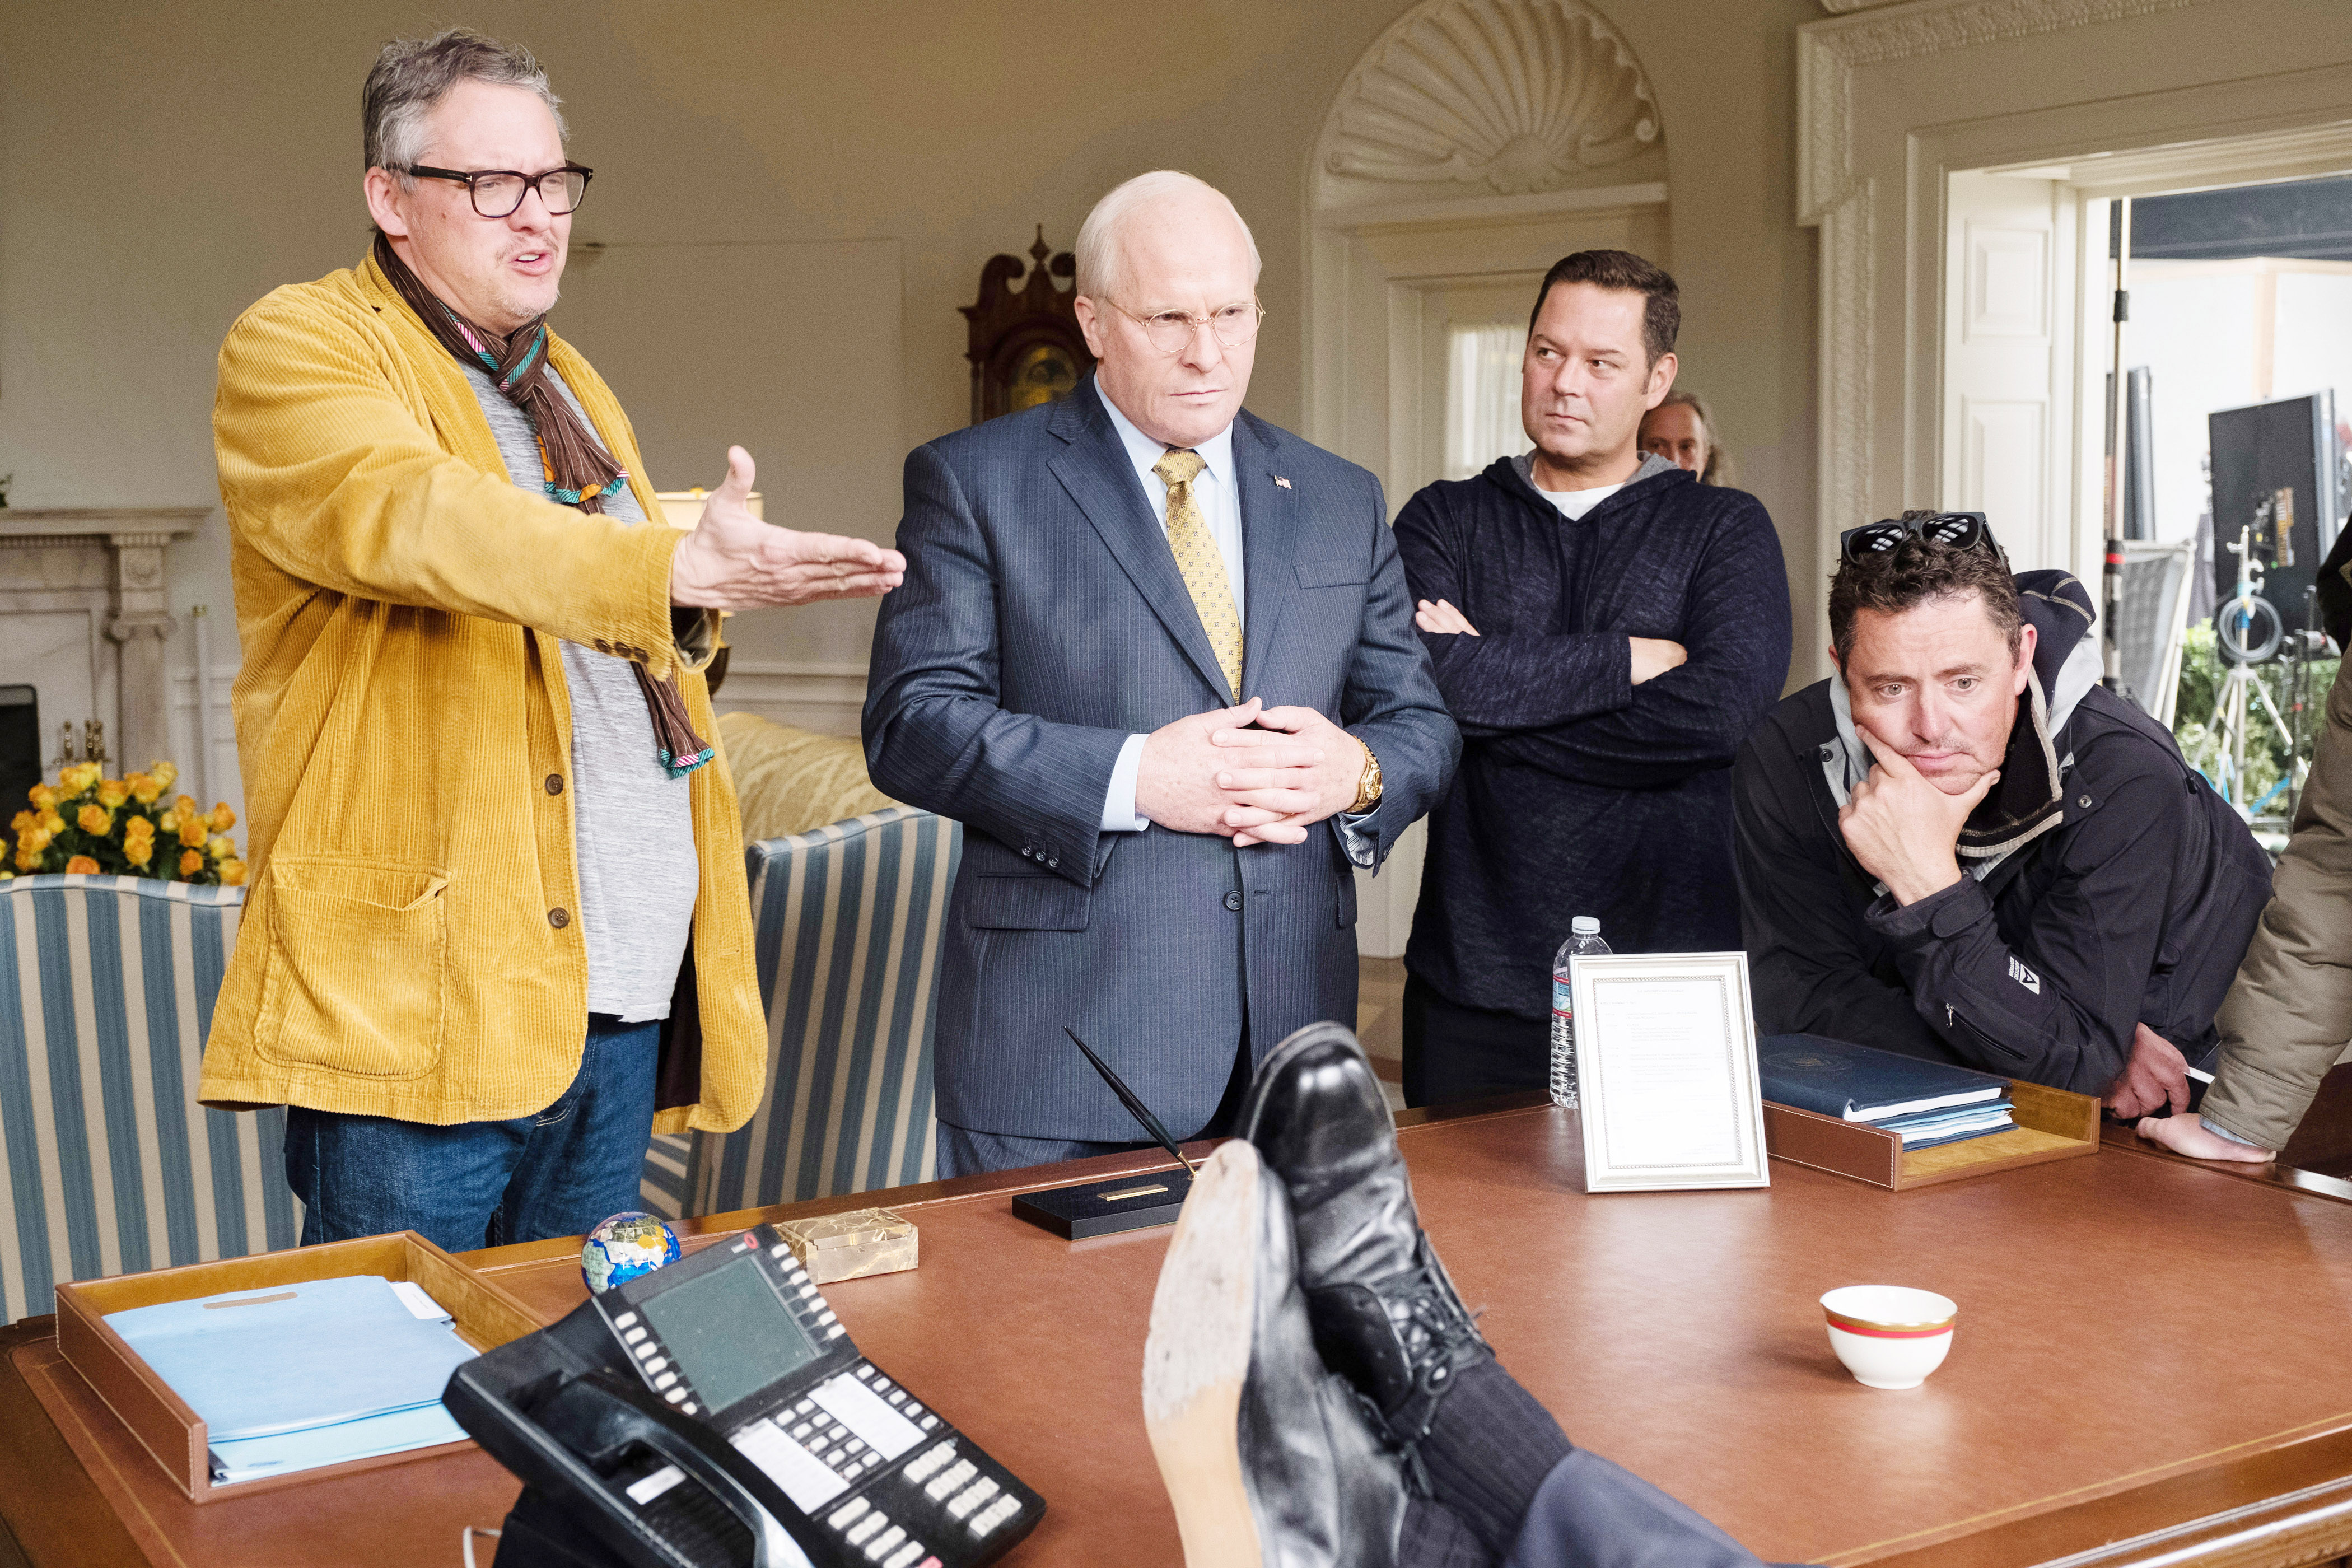 VICE, from left: director Adam McKay, Christian Bale as Dick Cheney, producer Kevin Messick, and cinematographer Greig Fraser on set, 2018. ph: Matt Kennedy / © Annapurna Pictures /Courtesy Everett Collection